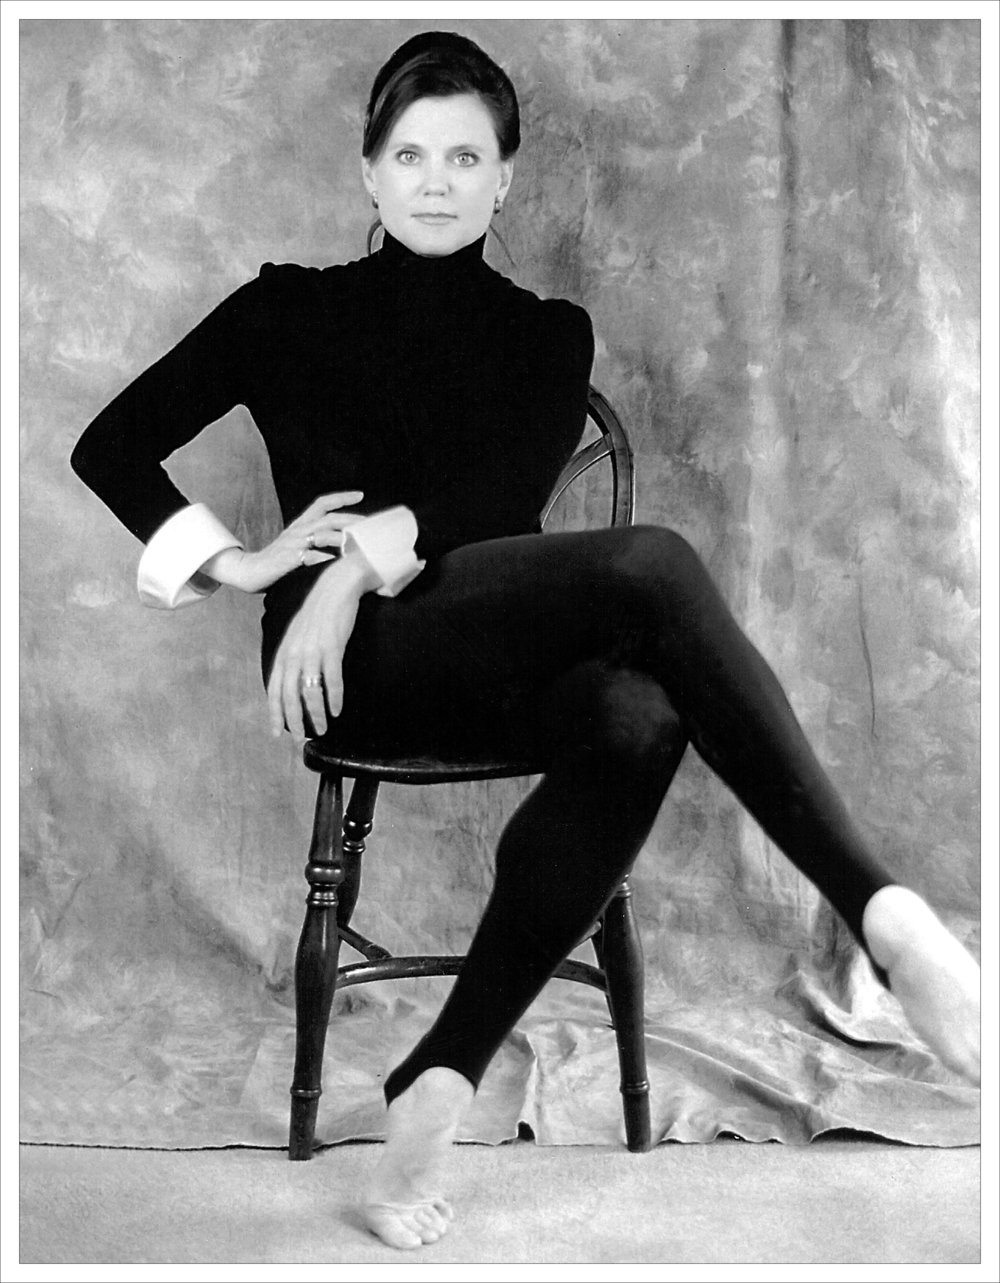 The Tony Award–winning choreographer of the 1996 production of Chicago (the longest-running revival in Broadway history), Ann Reinking is known for her work as an actress, singer, dancer, and choreographer. Ann will be in Columbus on Friday, December 2nd for the Broadway Ball at the Rivermill Center. By ANNA LOGAN